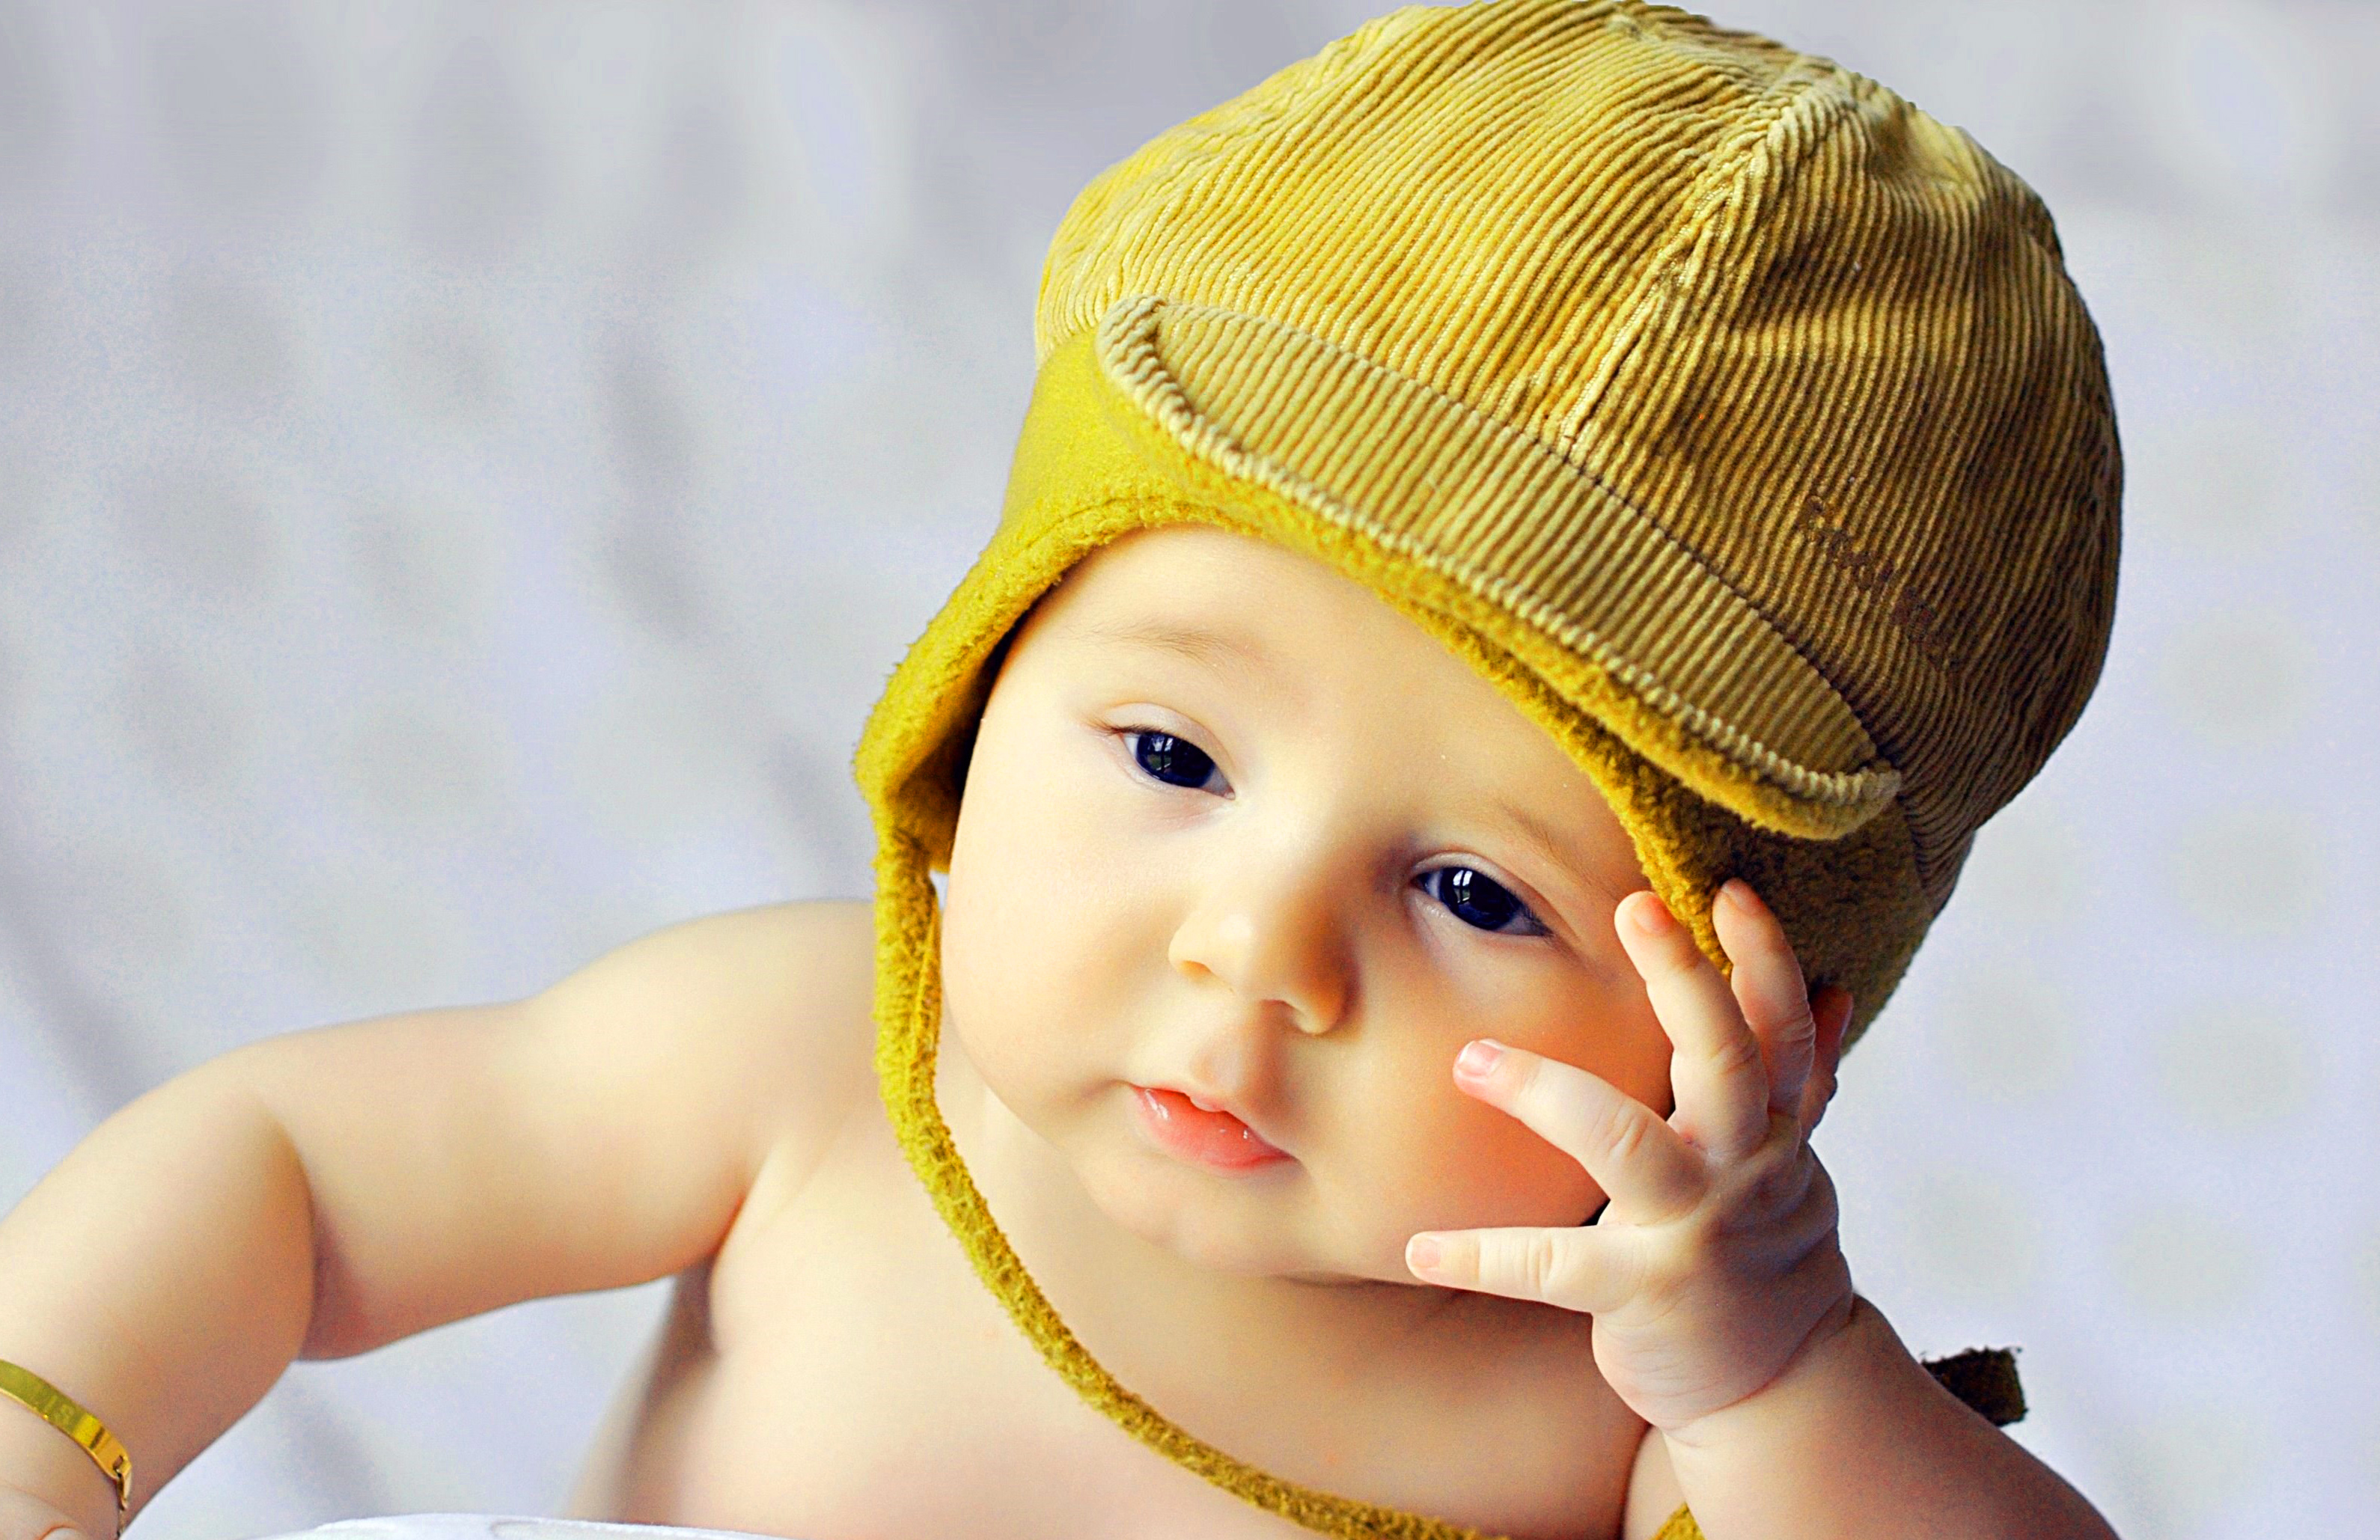 Cute baby boys girls images photo pics hd download